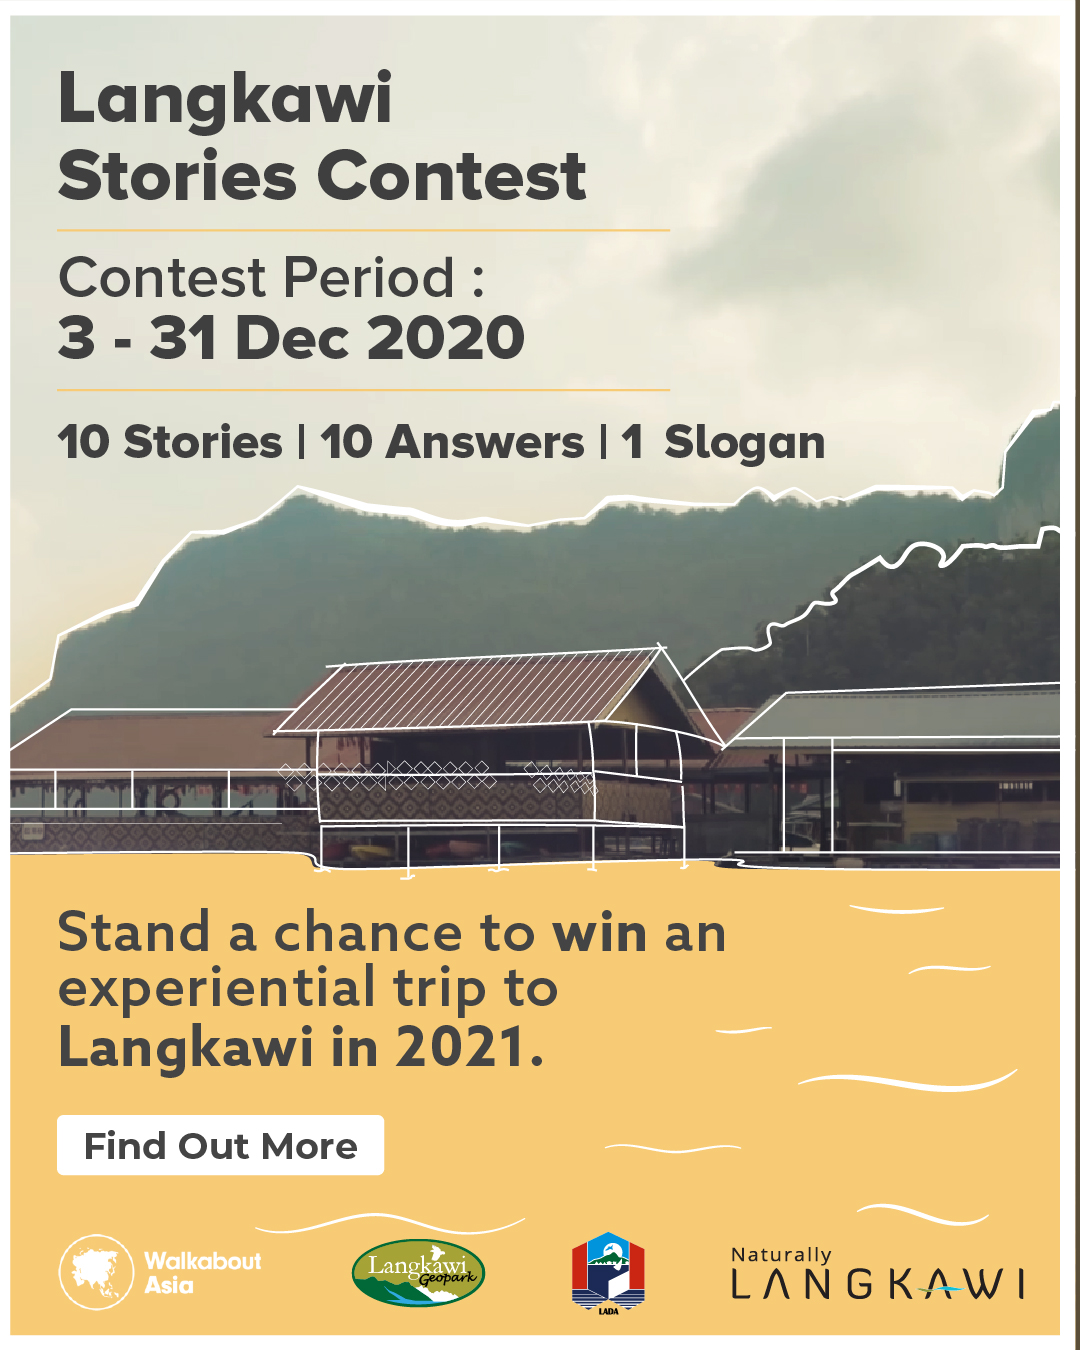 langkawi_stories_contest_po2